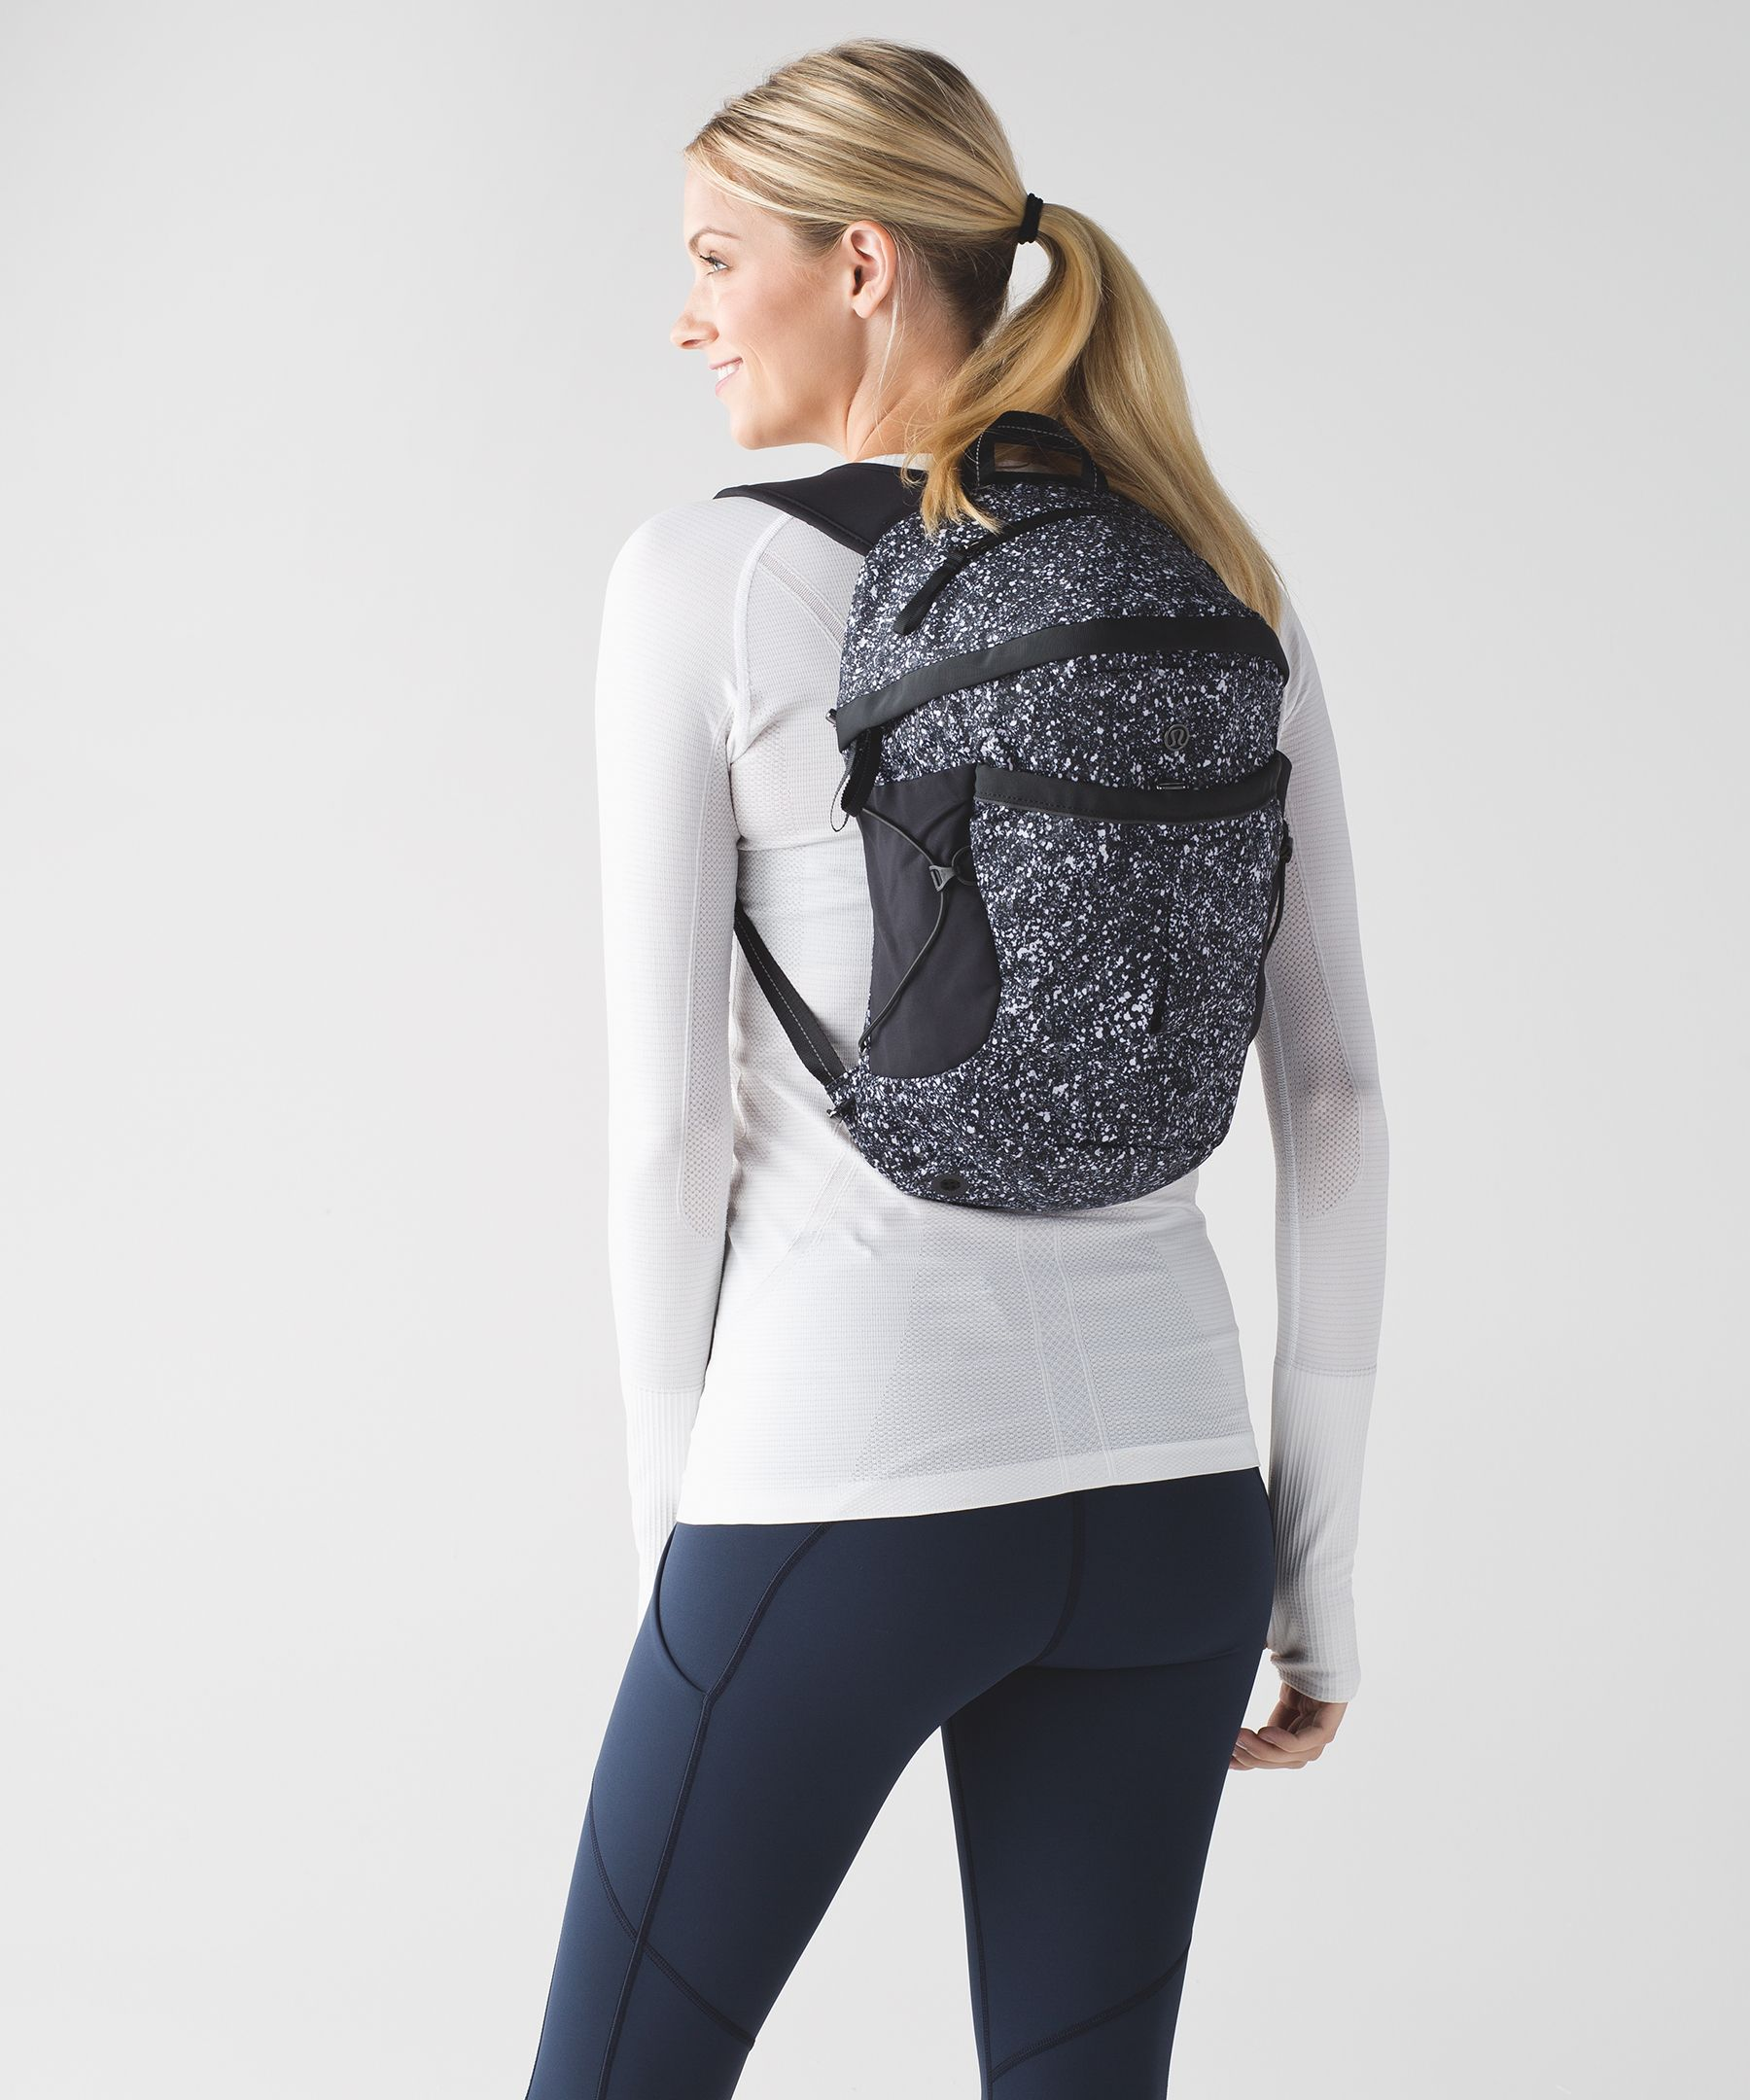 a4b9b19f287 run all day backpack *reflective   women's bags   lululemon athletica